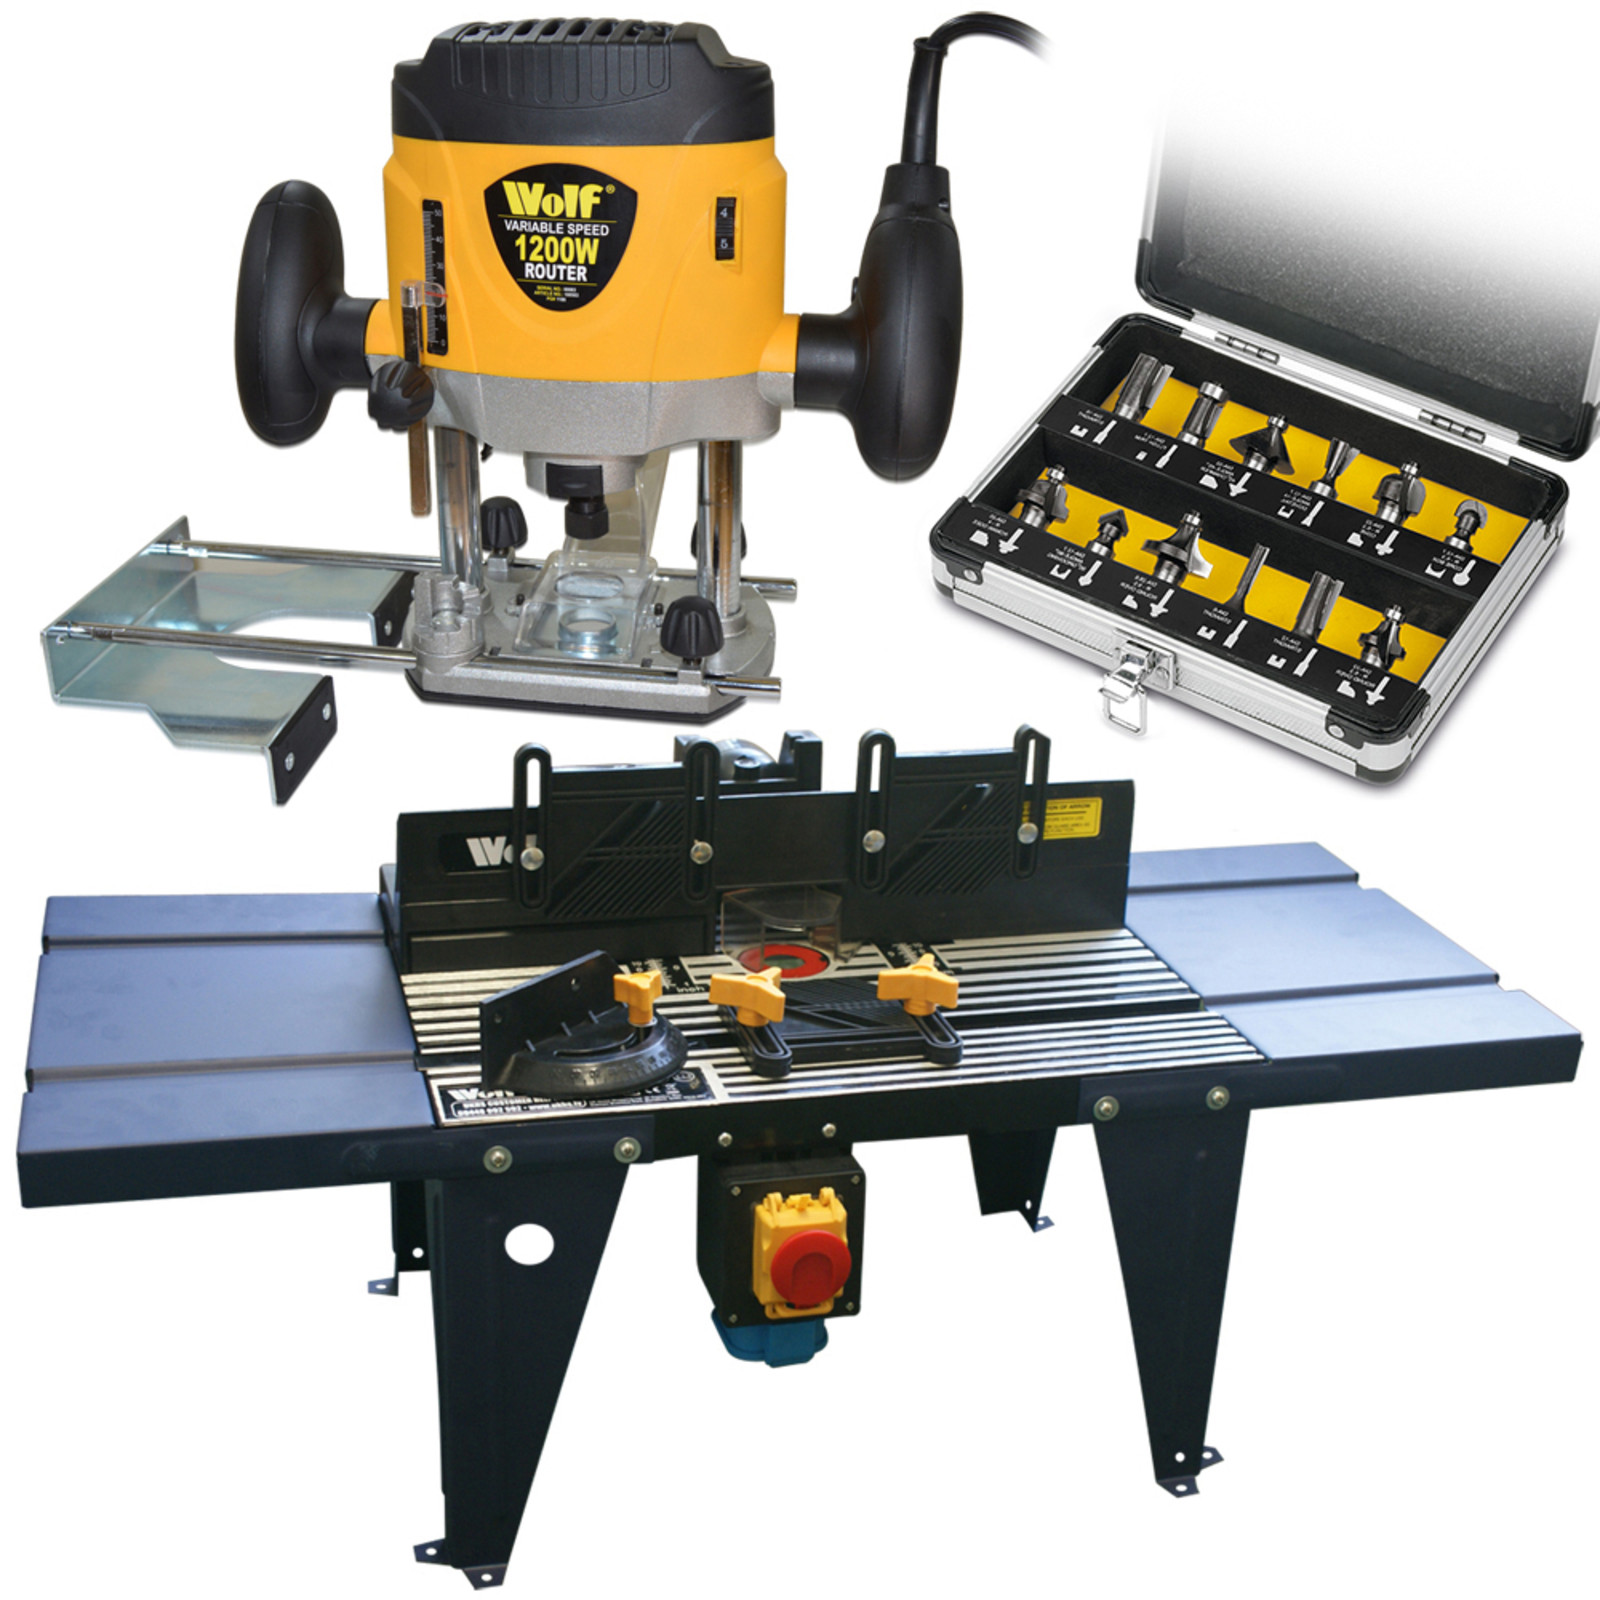 Wolf 1200w plunge router router table 12pc bit kit ukhs click on the image to enlarge greentooth Choice Image